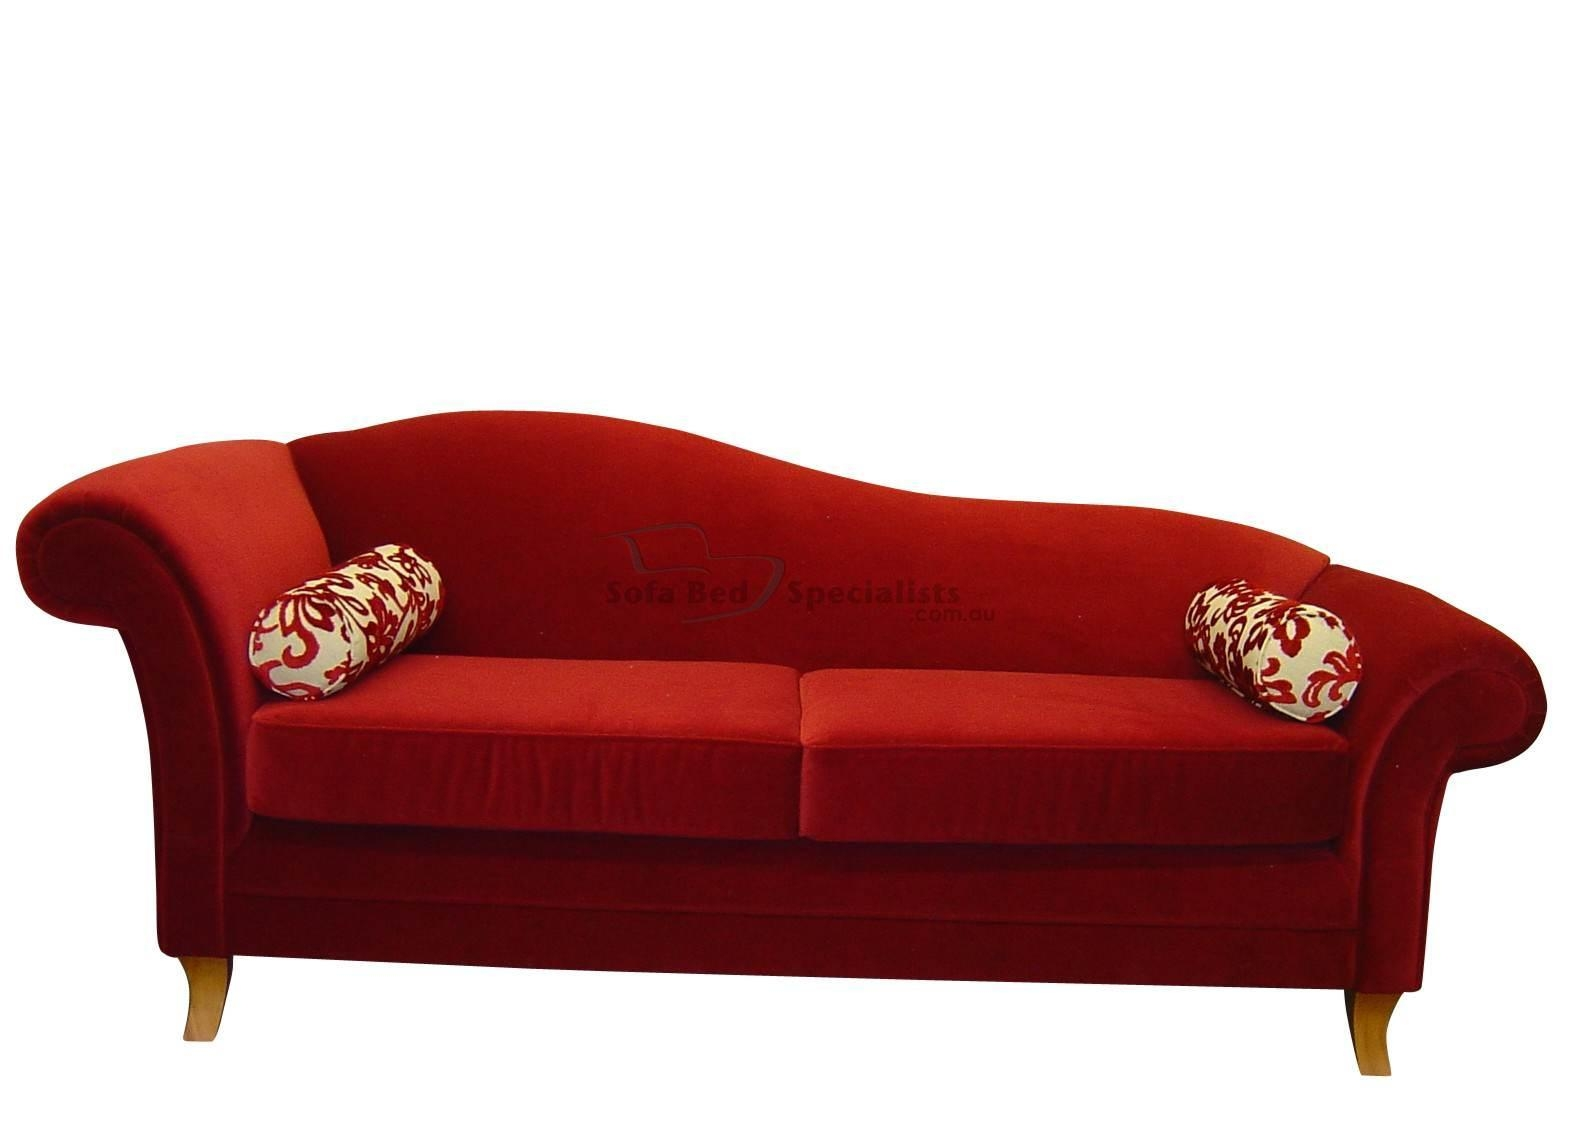 Cheap Sofa Beds Perth 20 43 Choices Of Red Sofa Beds Ikea Sofa Ideas